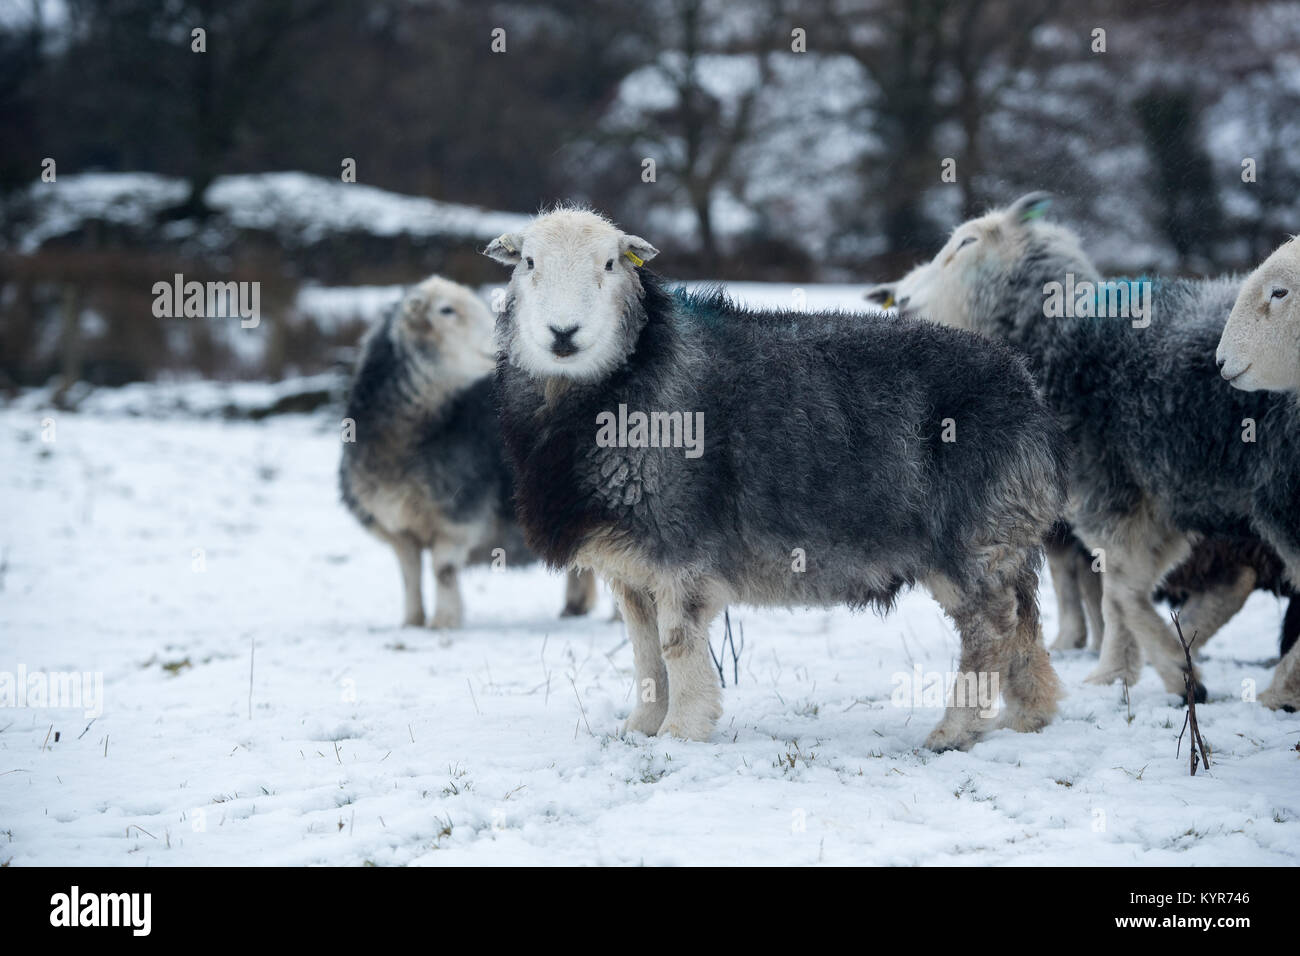 Herdwick sheep, traditional hill breed from Cumbria, in snowy weather, Cumbria, UK - Stock Image